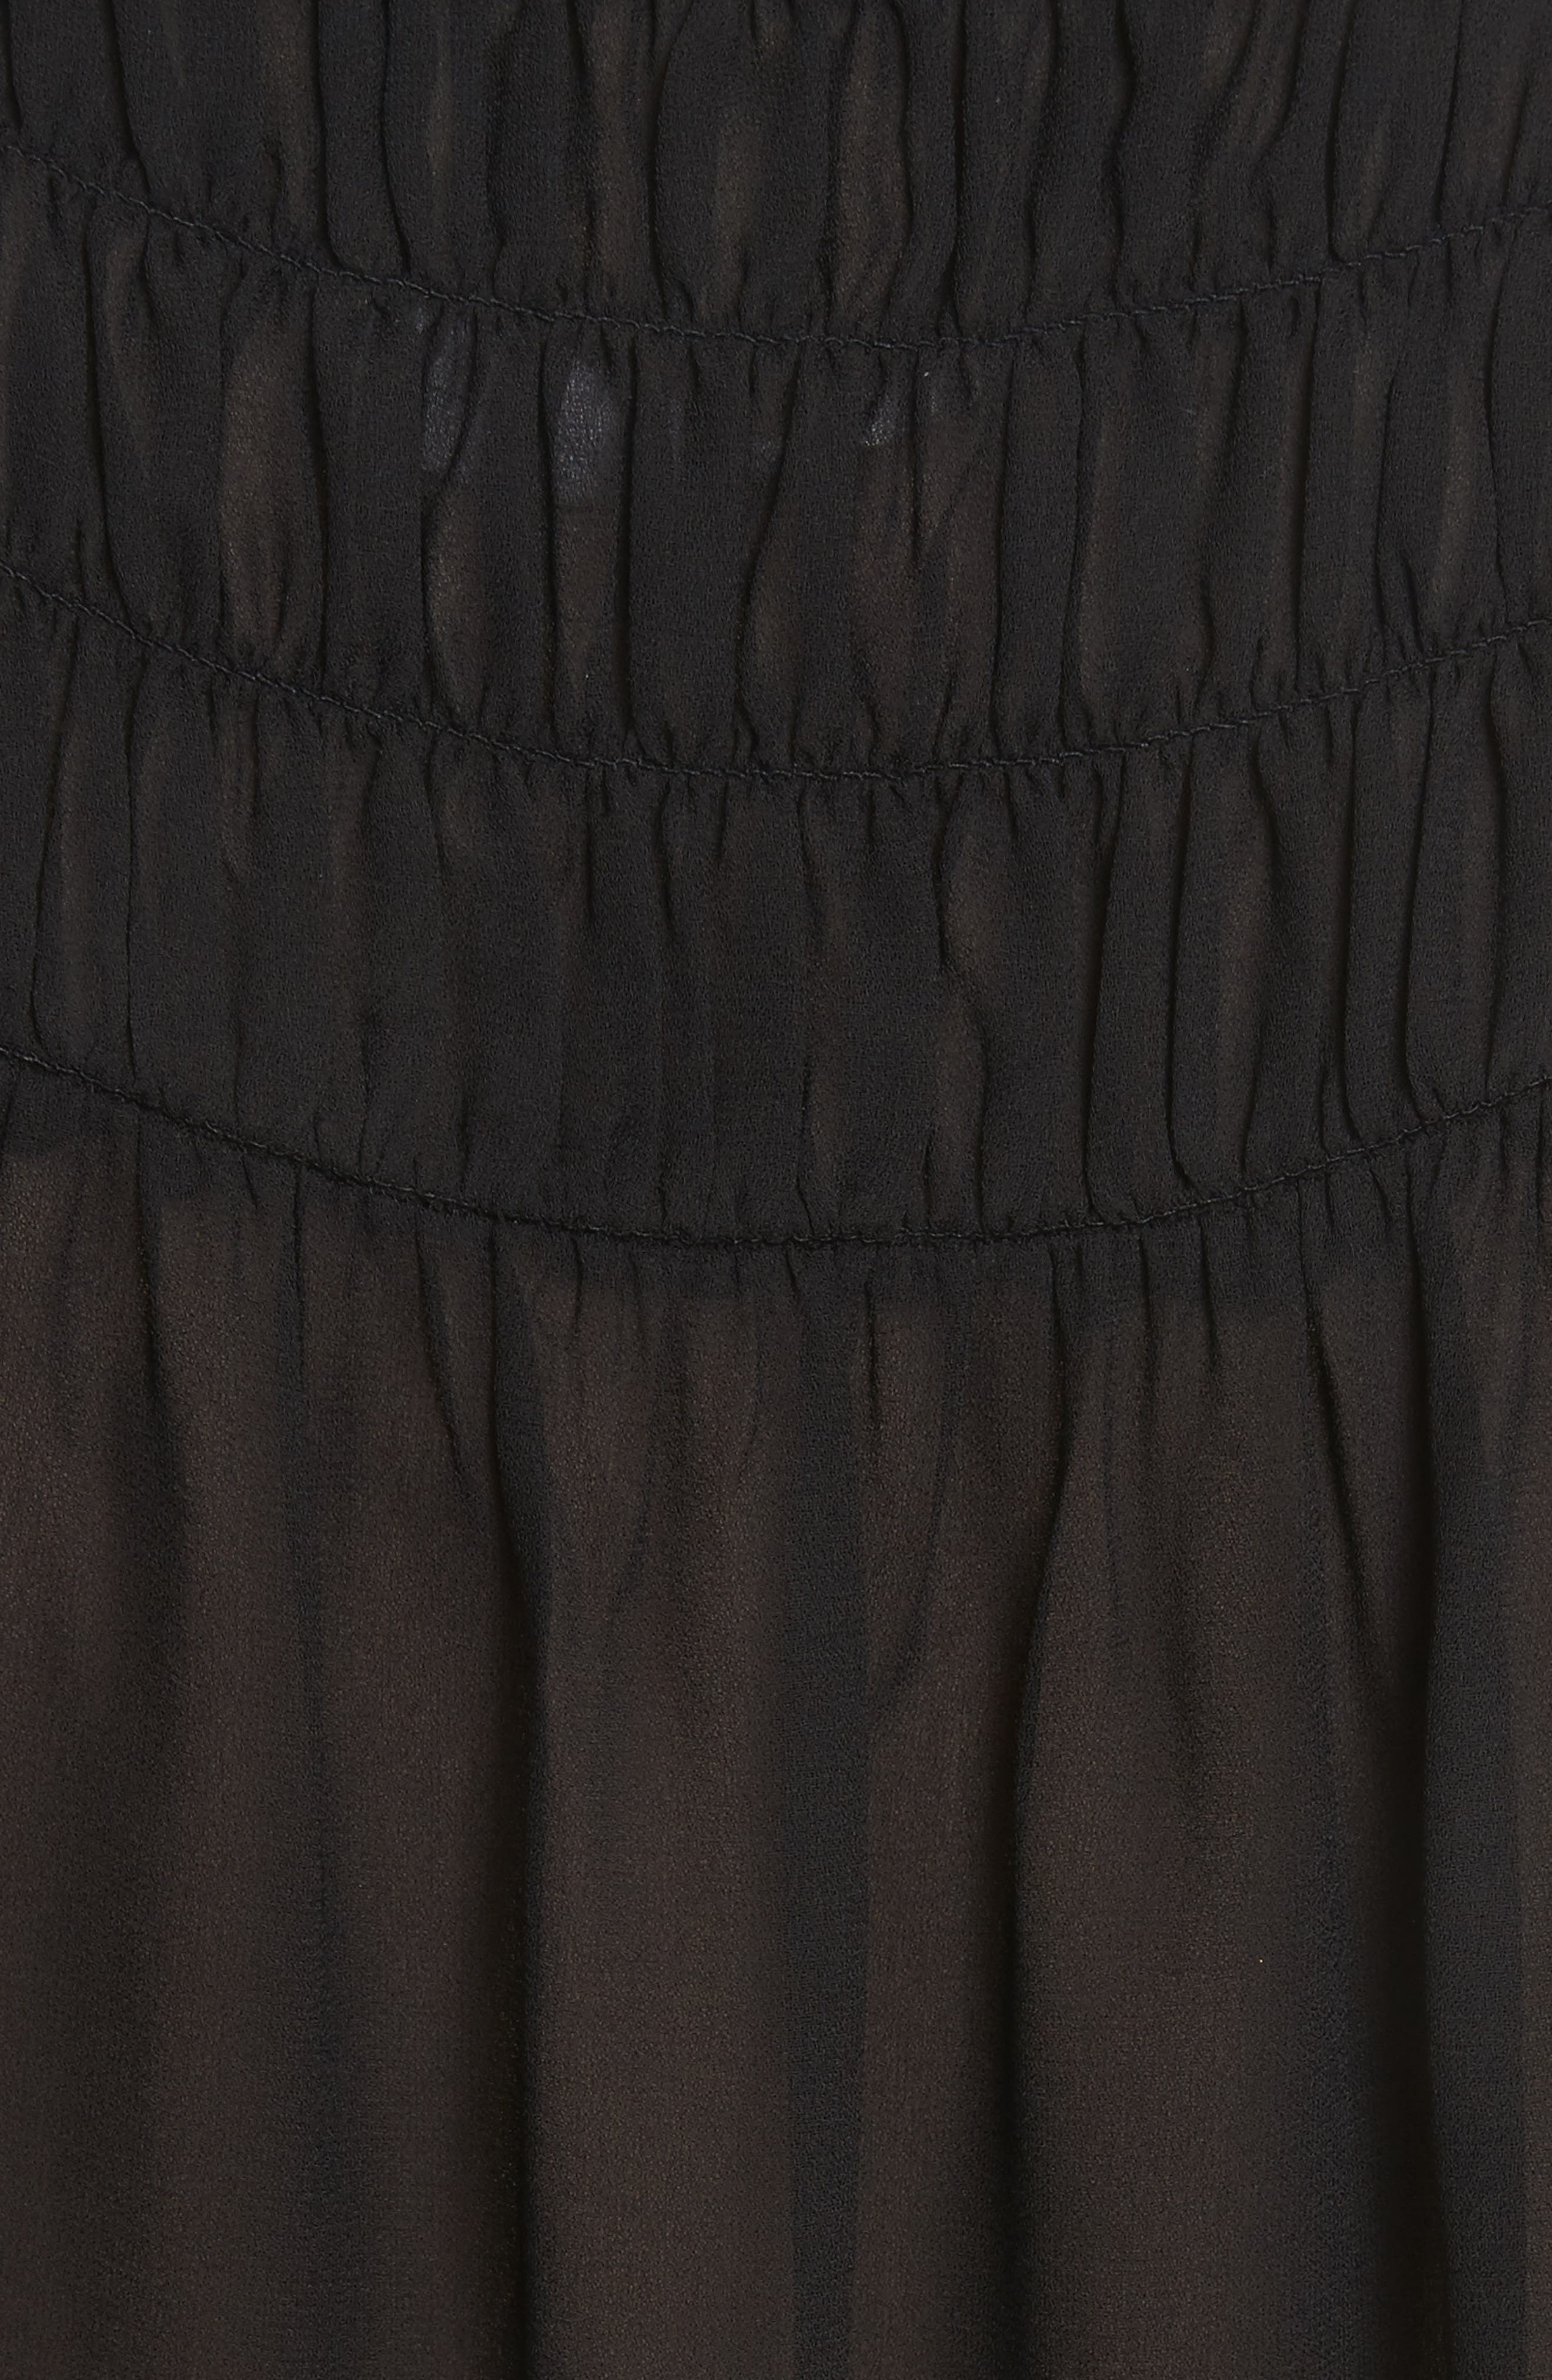 Smocked Blouse,                             Alternate thumbnail 6, color,                             Noir